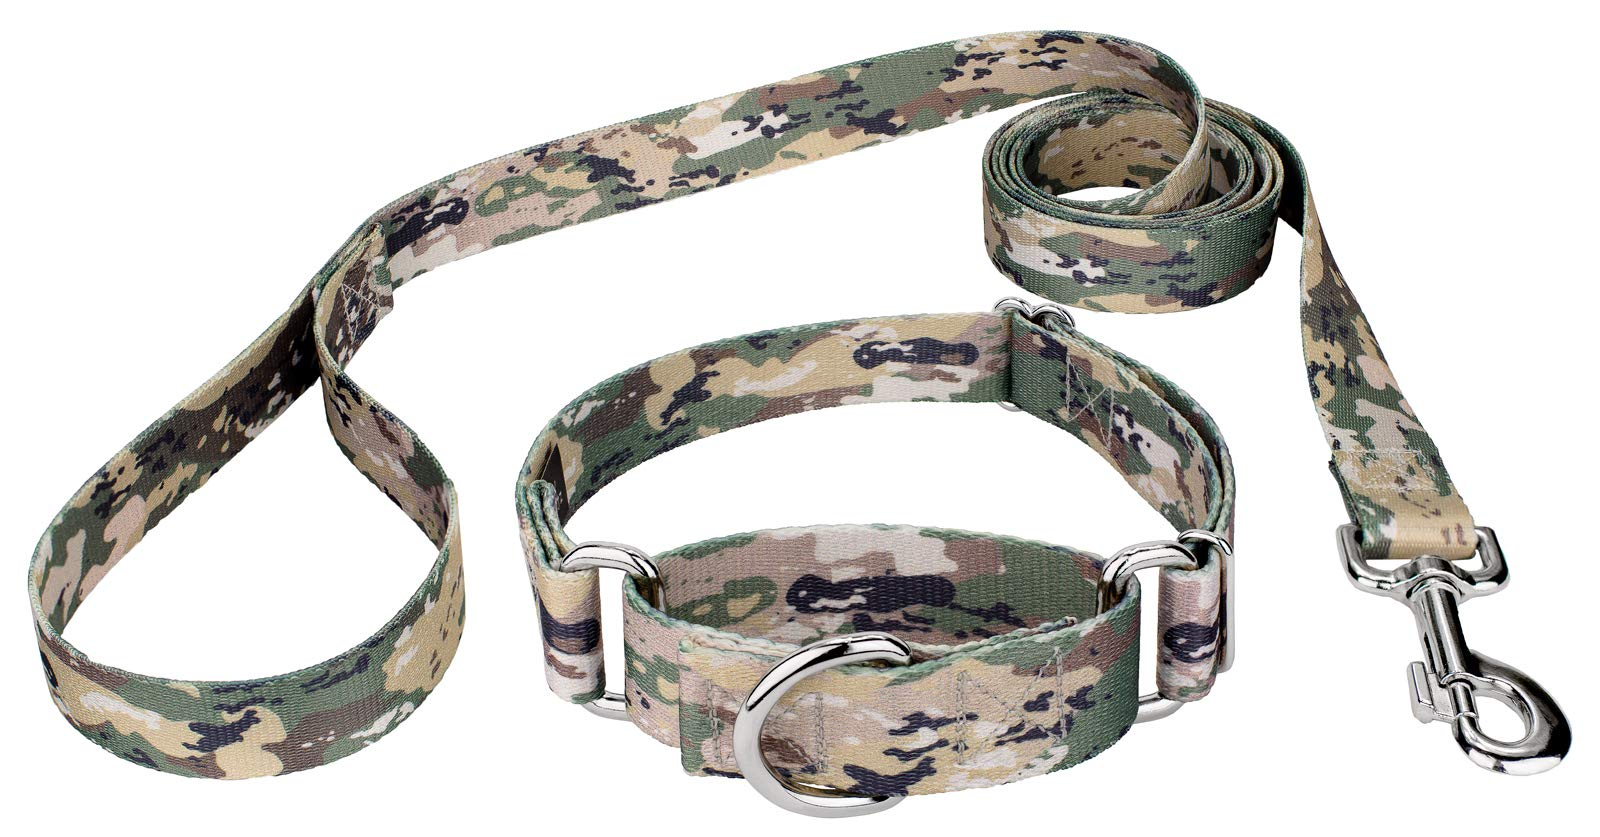 Country Brook Design Mountain Viper Camo Martingale Dog Collar & Leash - Medium by Country Brook Design